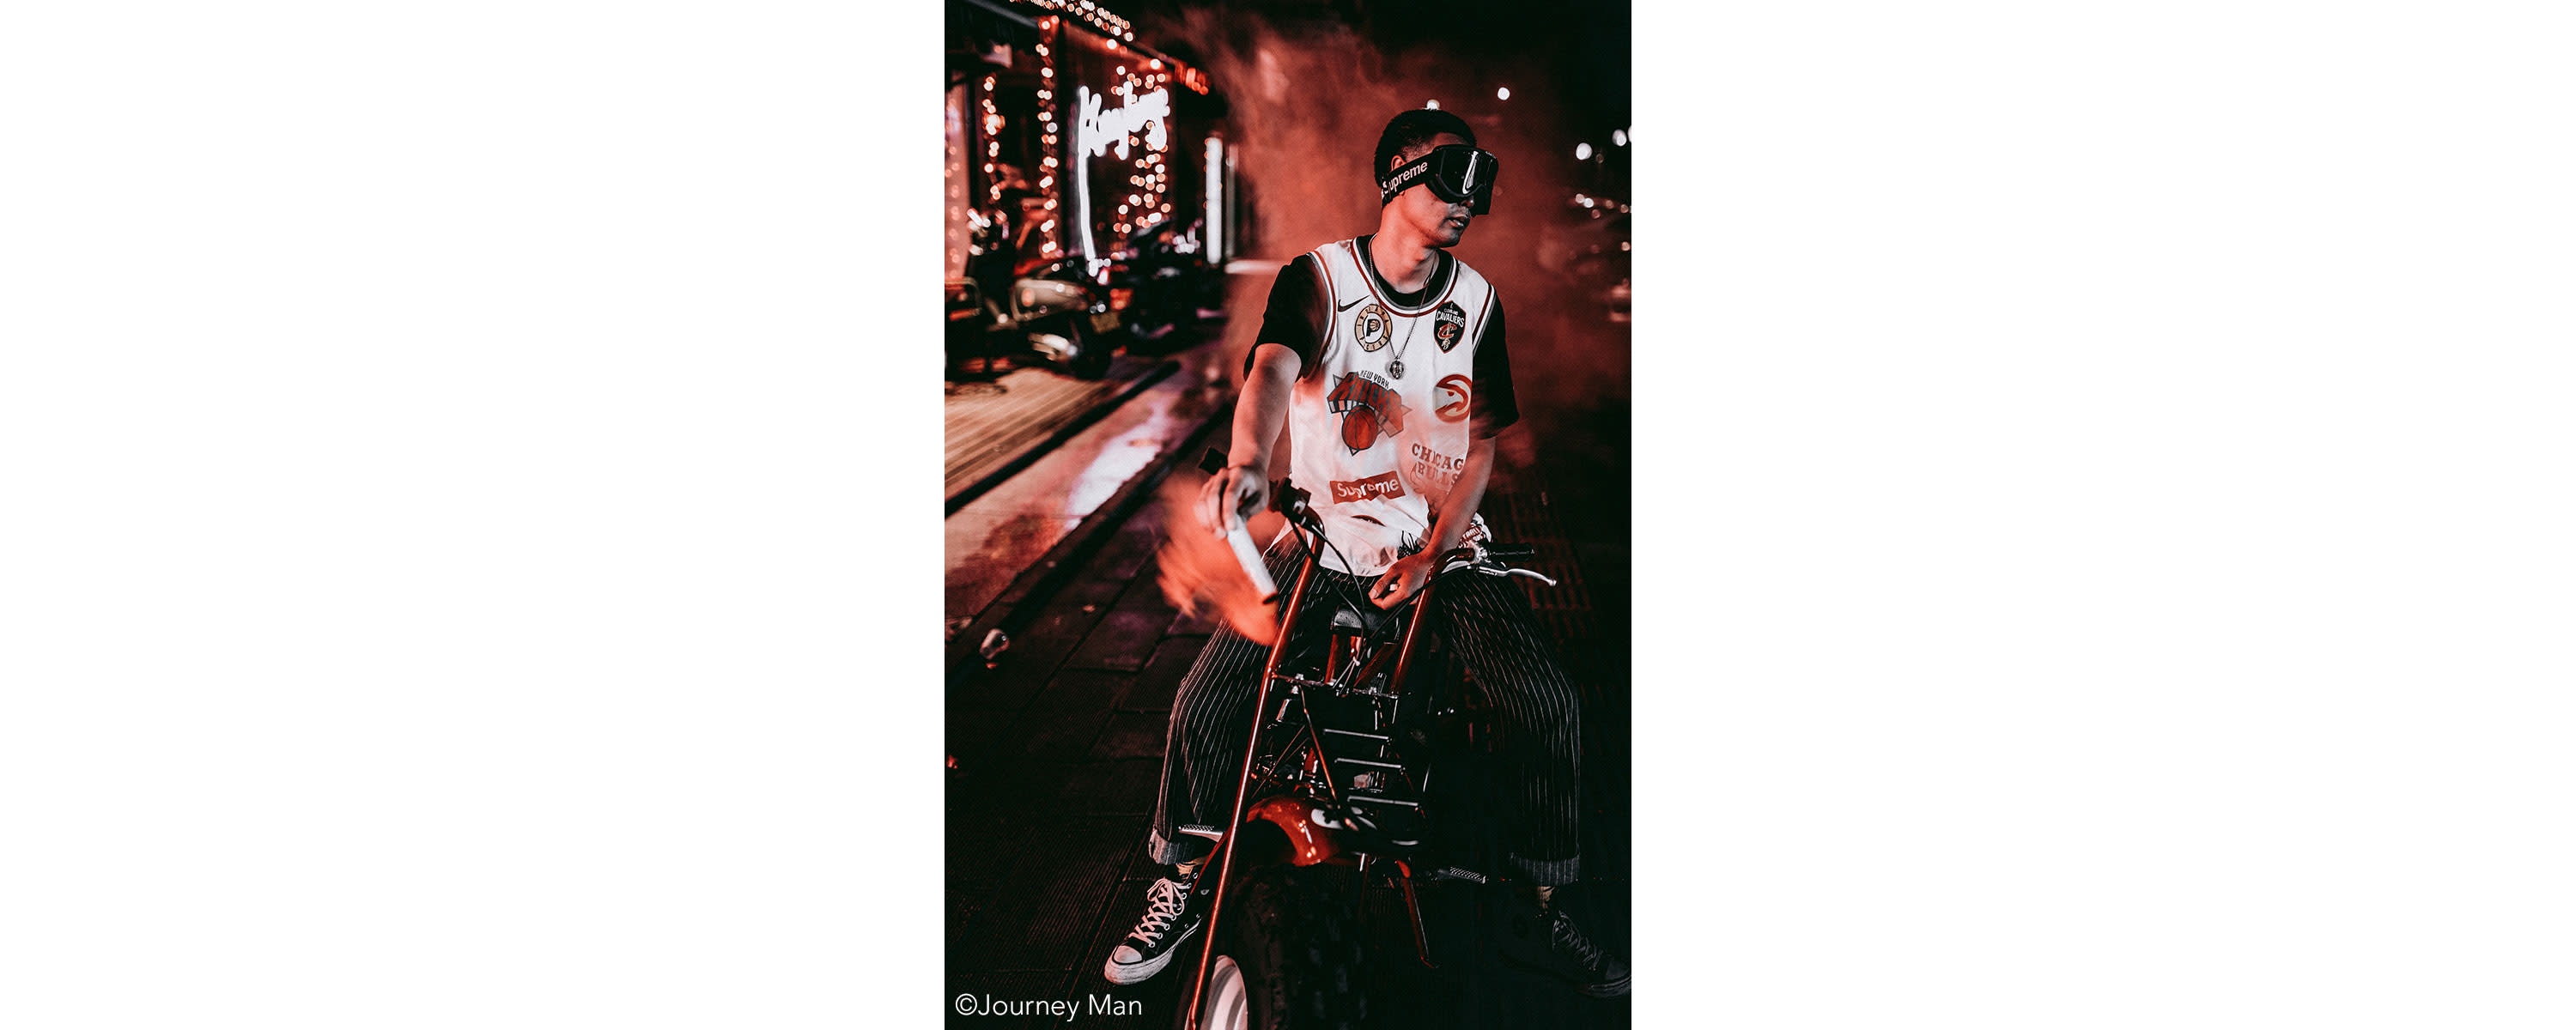 <div class='title'>           Photographer Journey Man's image of this biker has an edgy feel to it and looks amazing on metallic paper         </div>                 <div class='description'>                    </div>